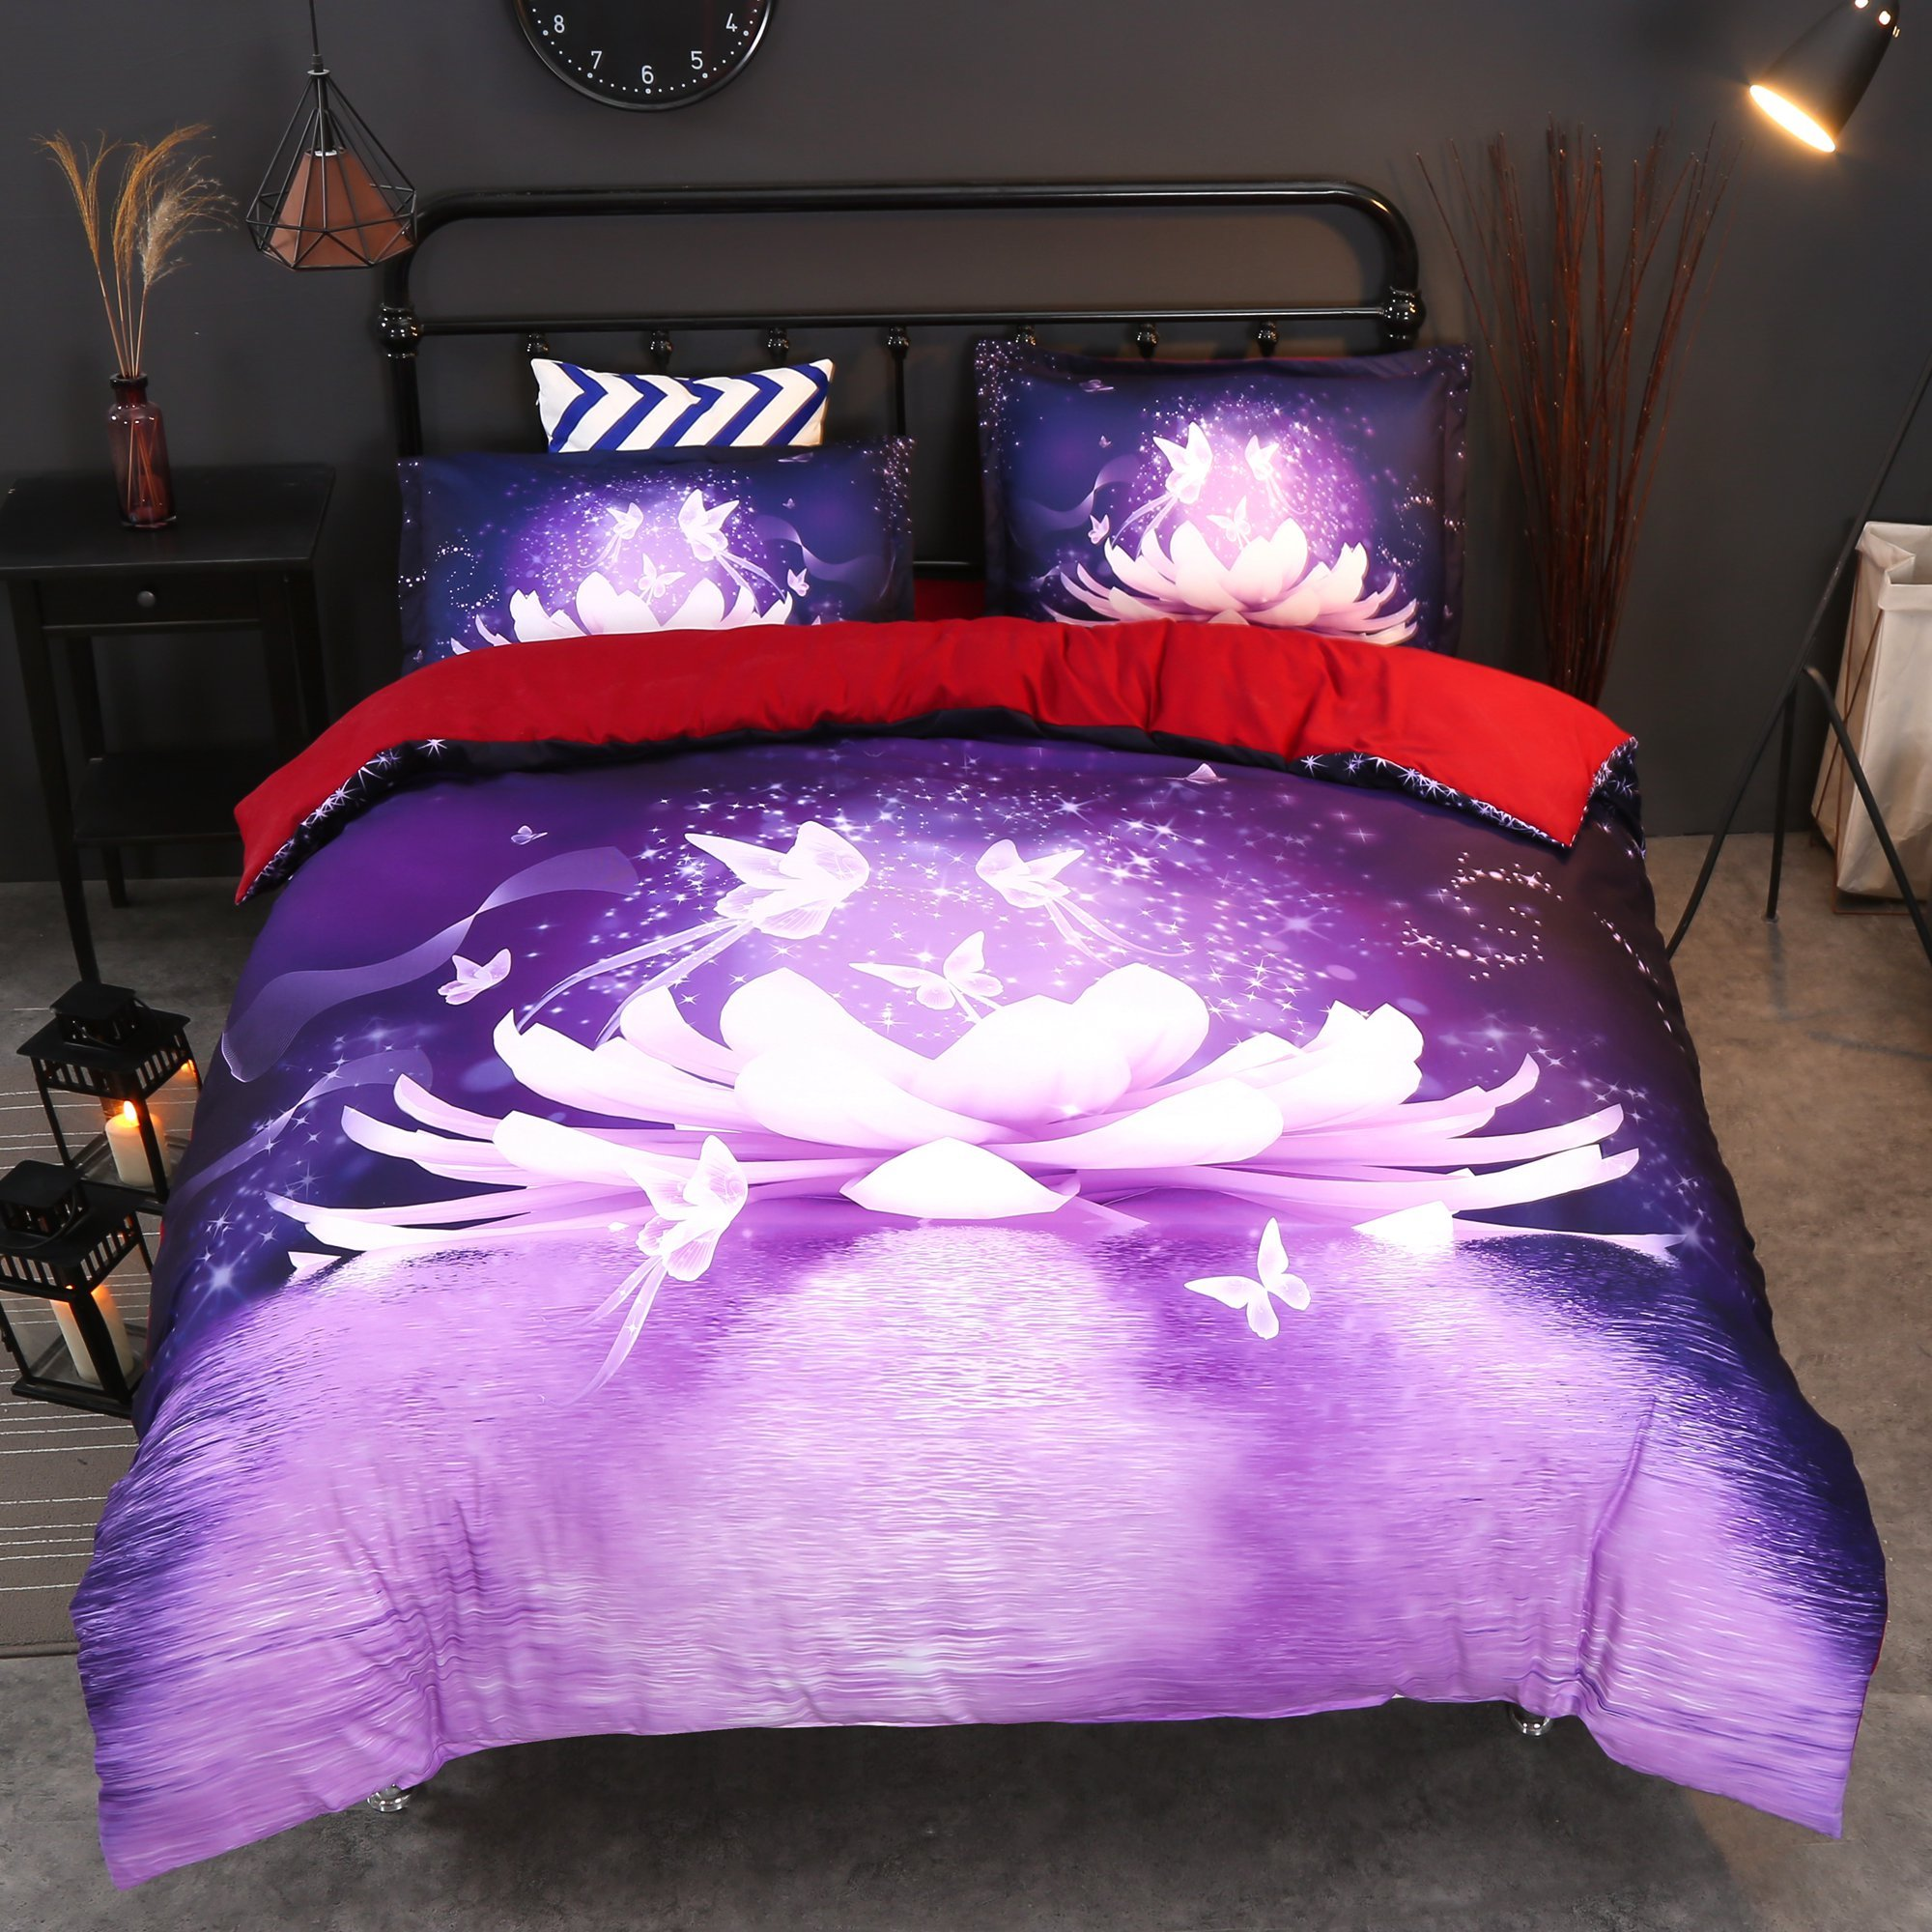 3D Dreamy Lotus and Butterfly Printed Cotton 4-Piece Purple Bedding Sets/Duvet Covers